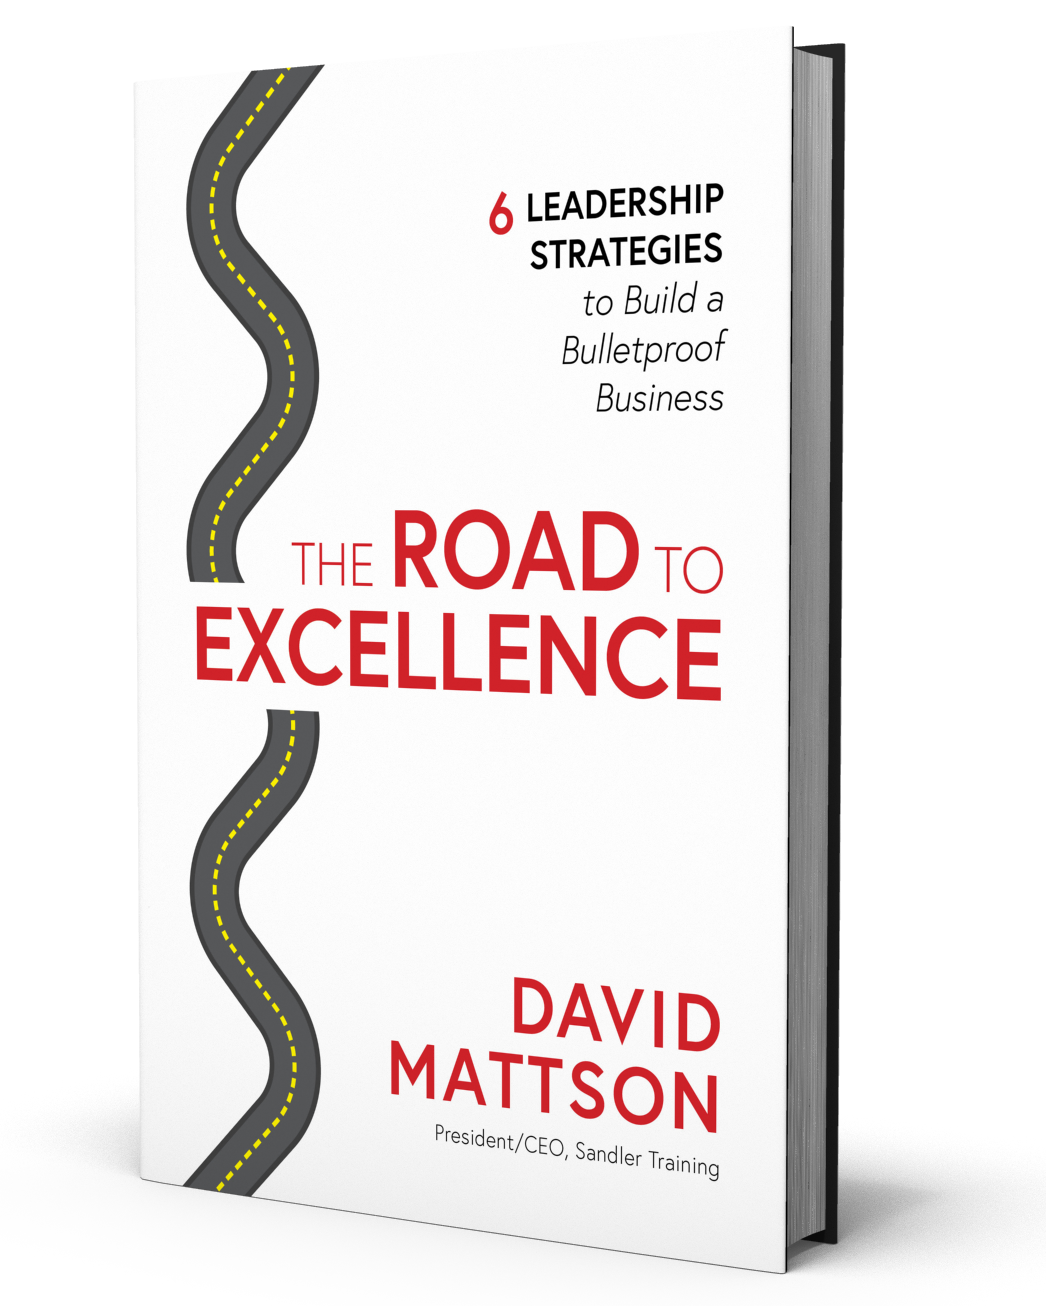 The Road to Excellence Book Cover